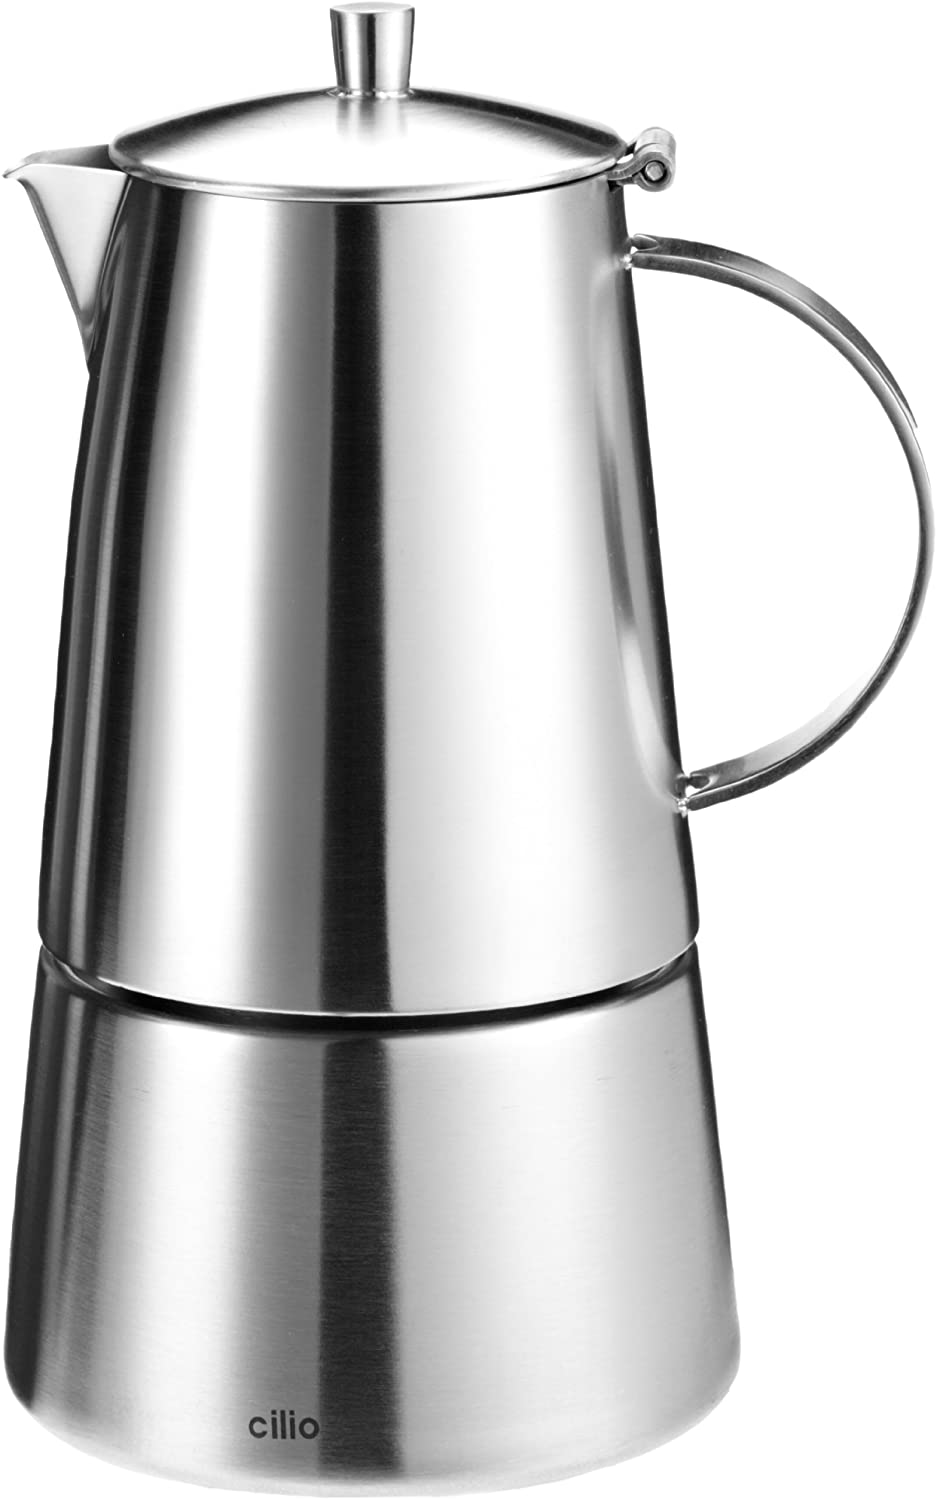 Cilio Modena 202304 Espresso Maker 6 Cups, Stainless Steel